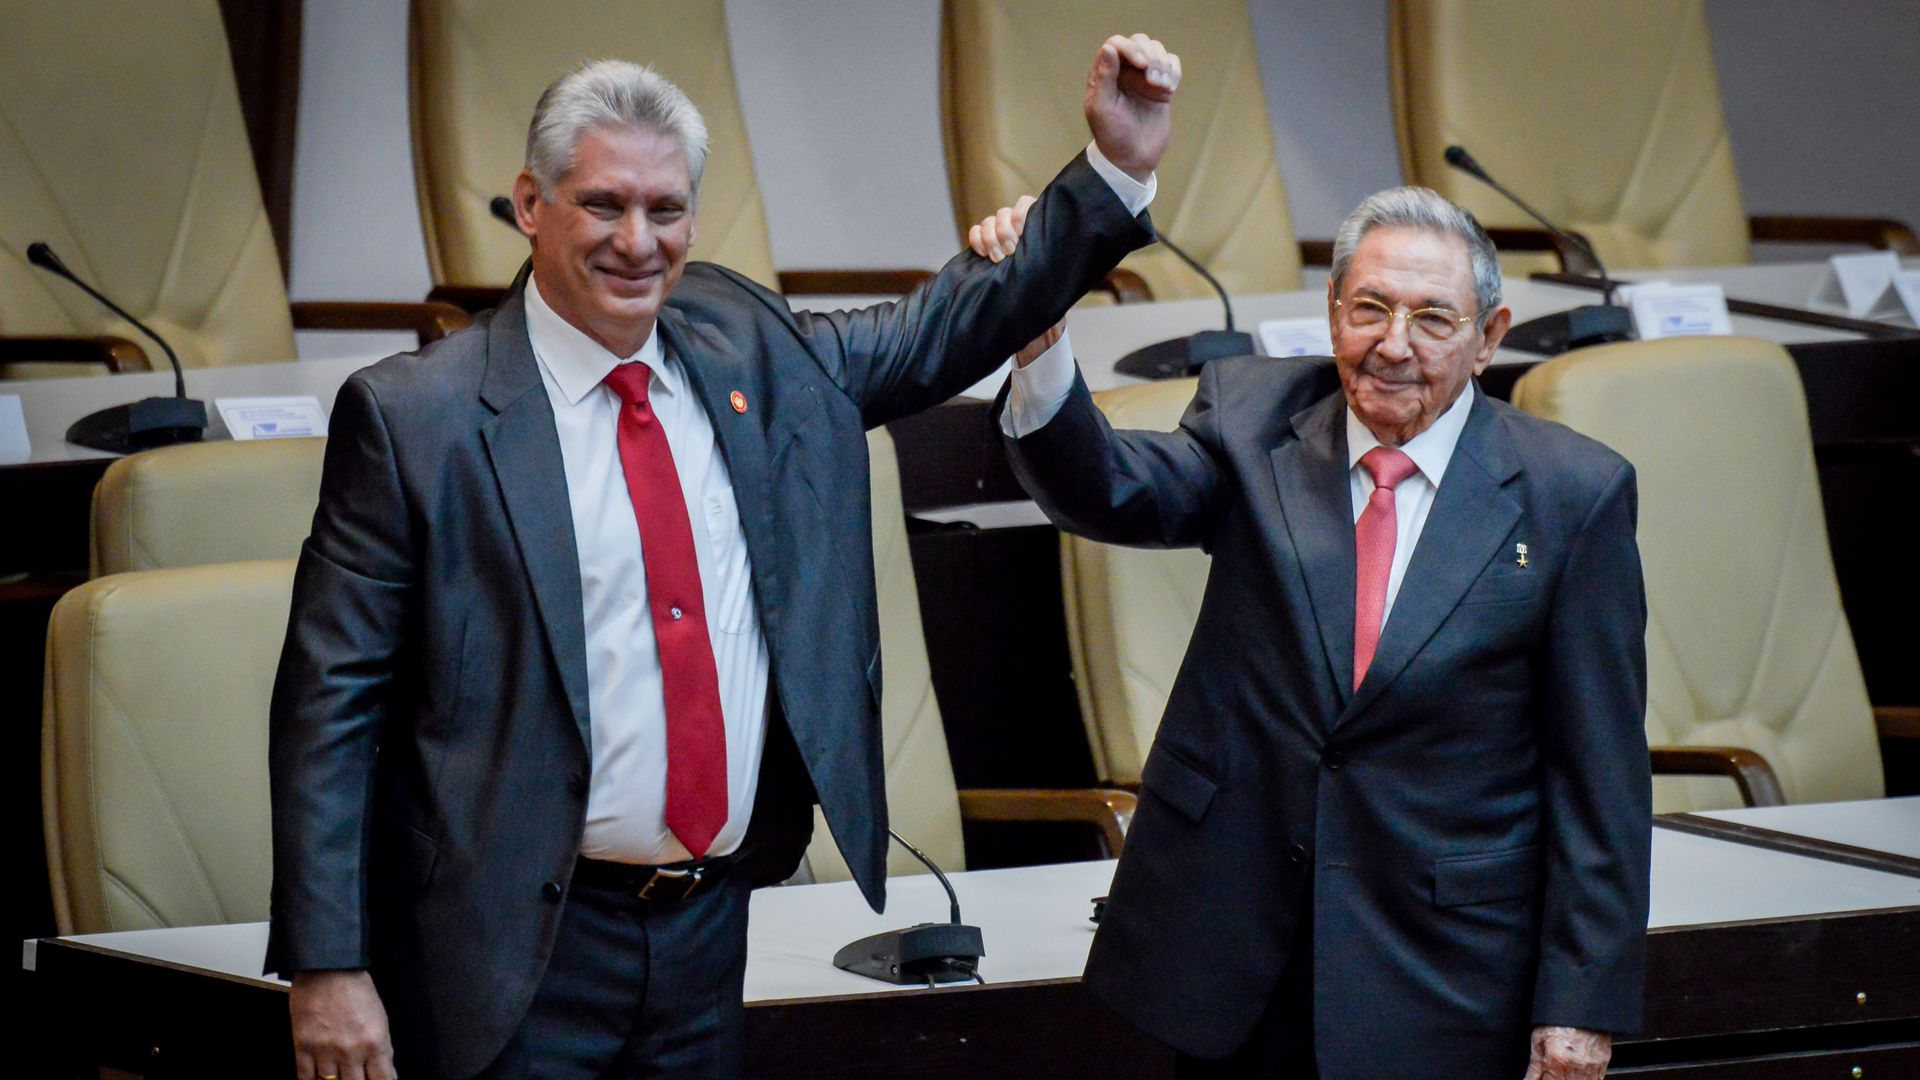 Former Cuban President Raul Castro raises the arm of newly elected Cuban President Miguel Diaz-Canel.